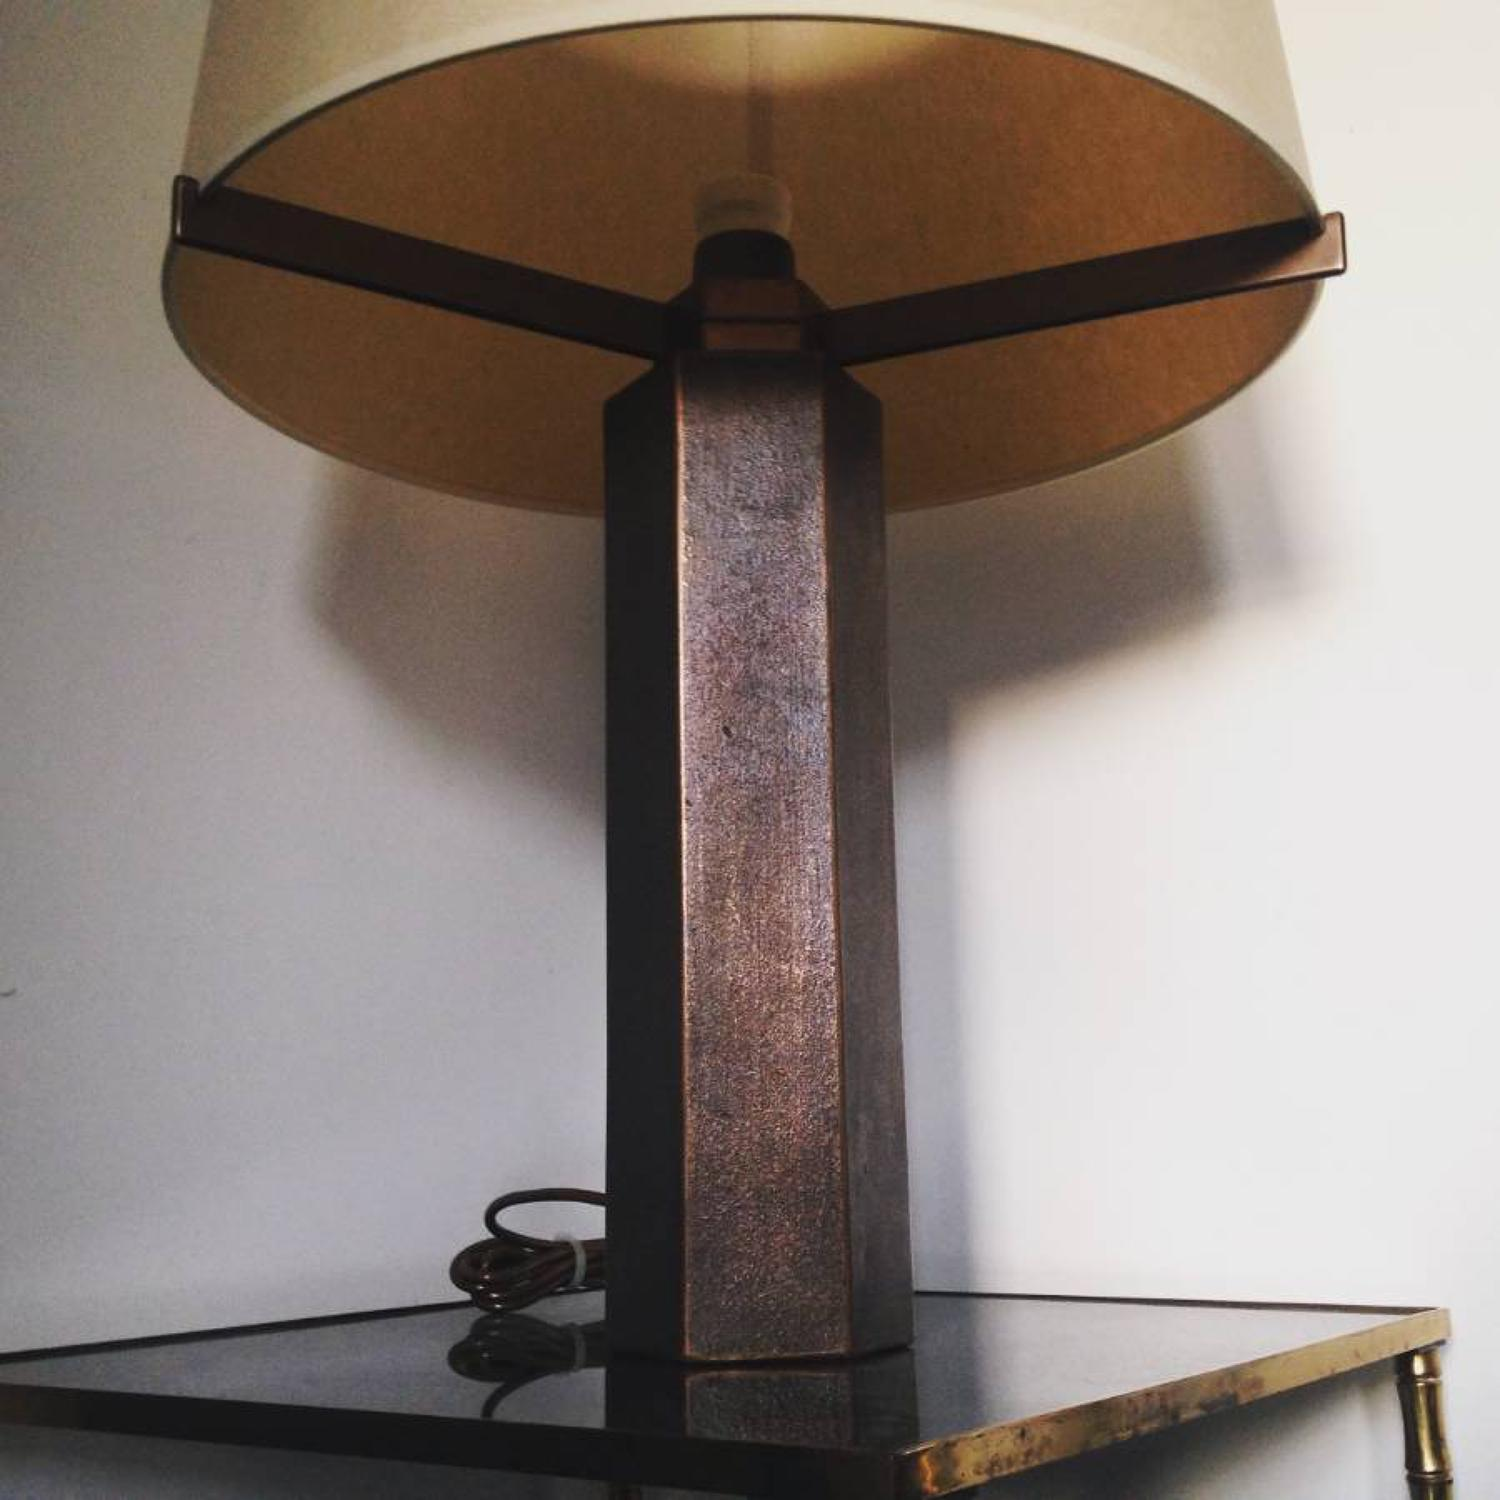 Hexagonal solid bronze table lamp by Jules Wabbes